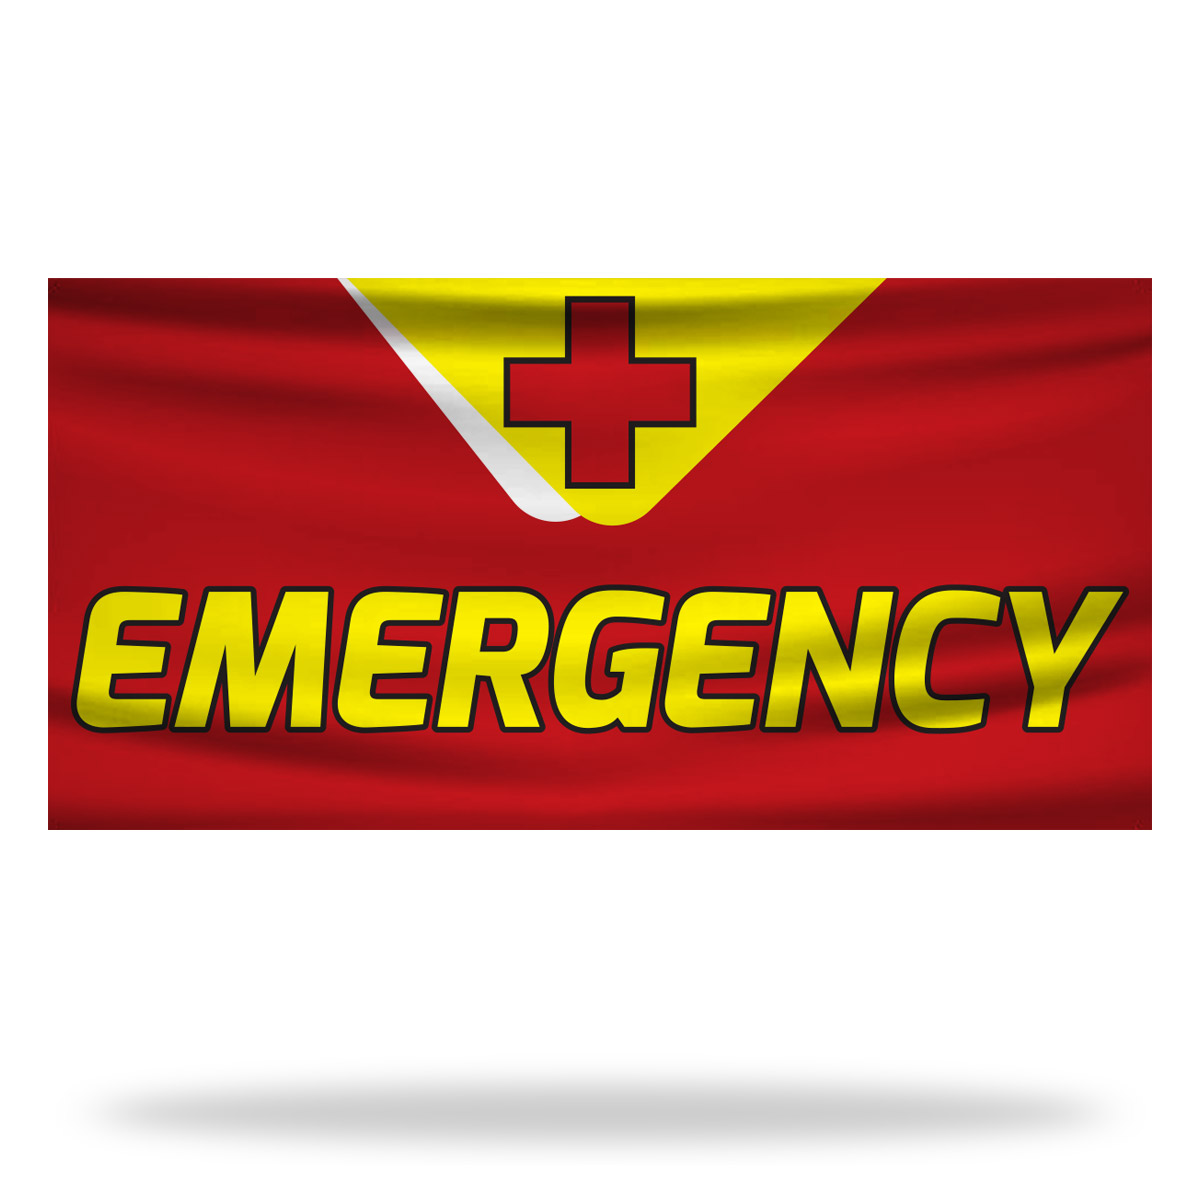 Medical Emergency Flags & Banners Design 01